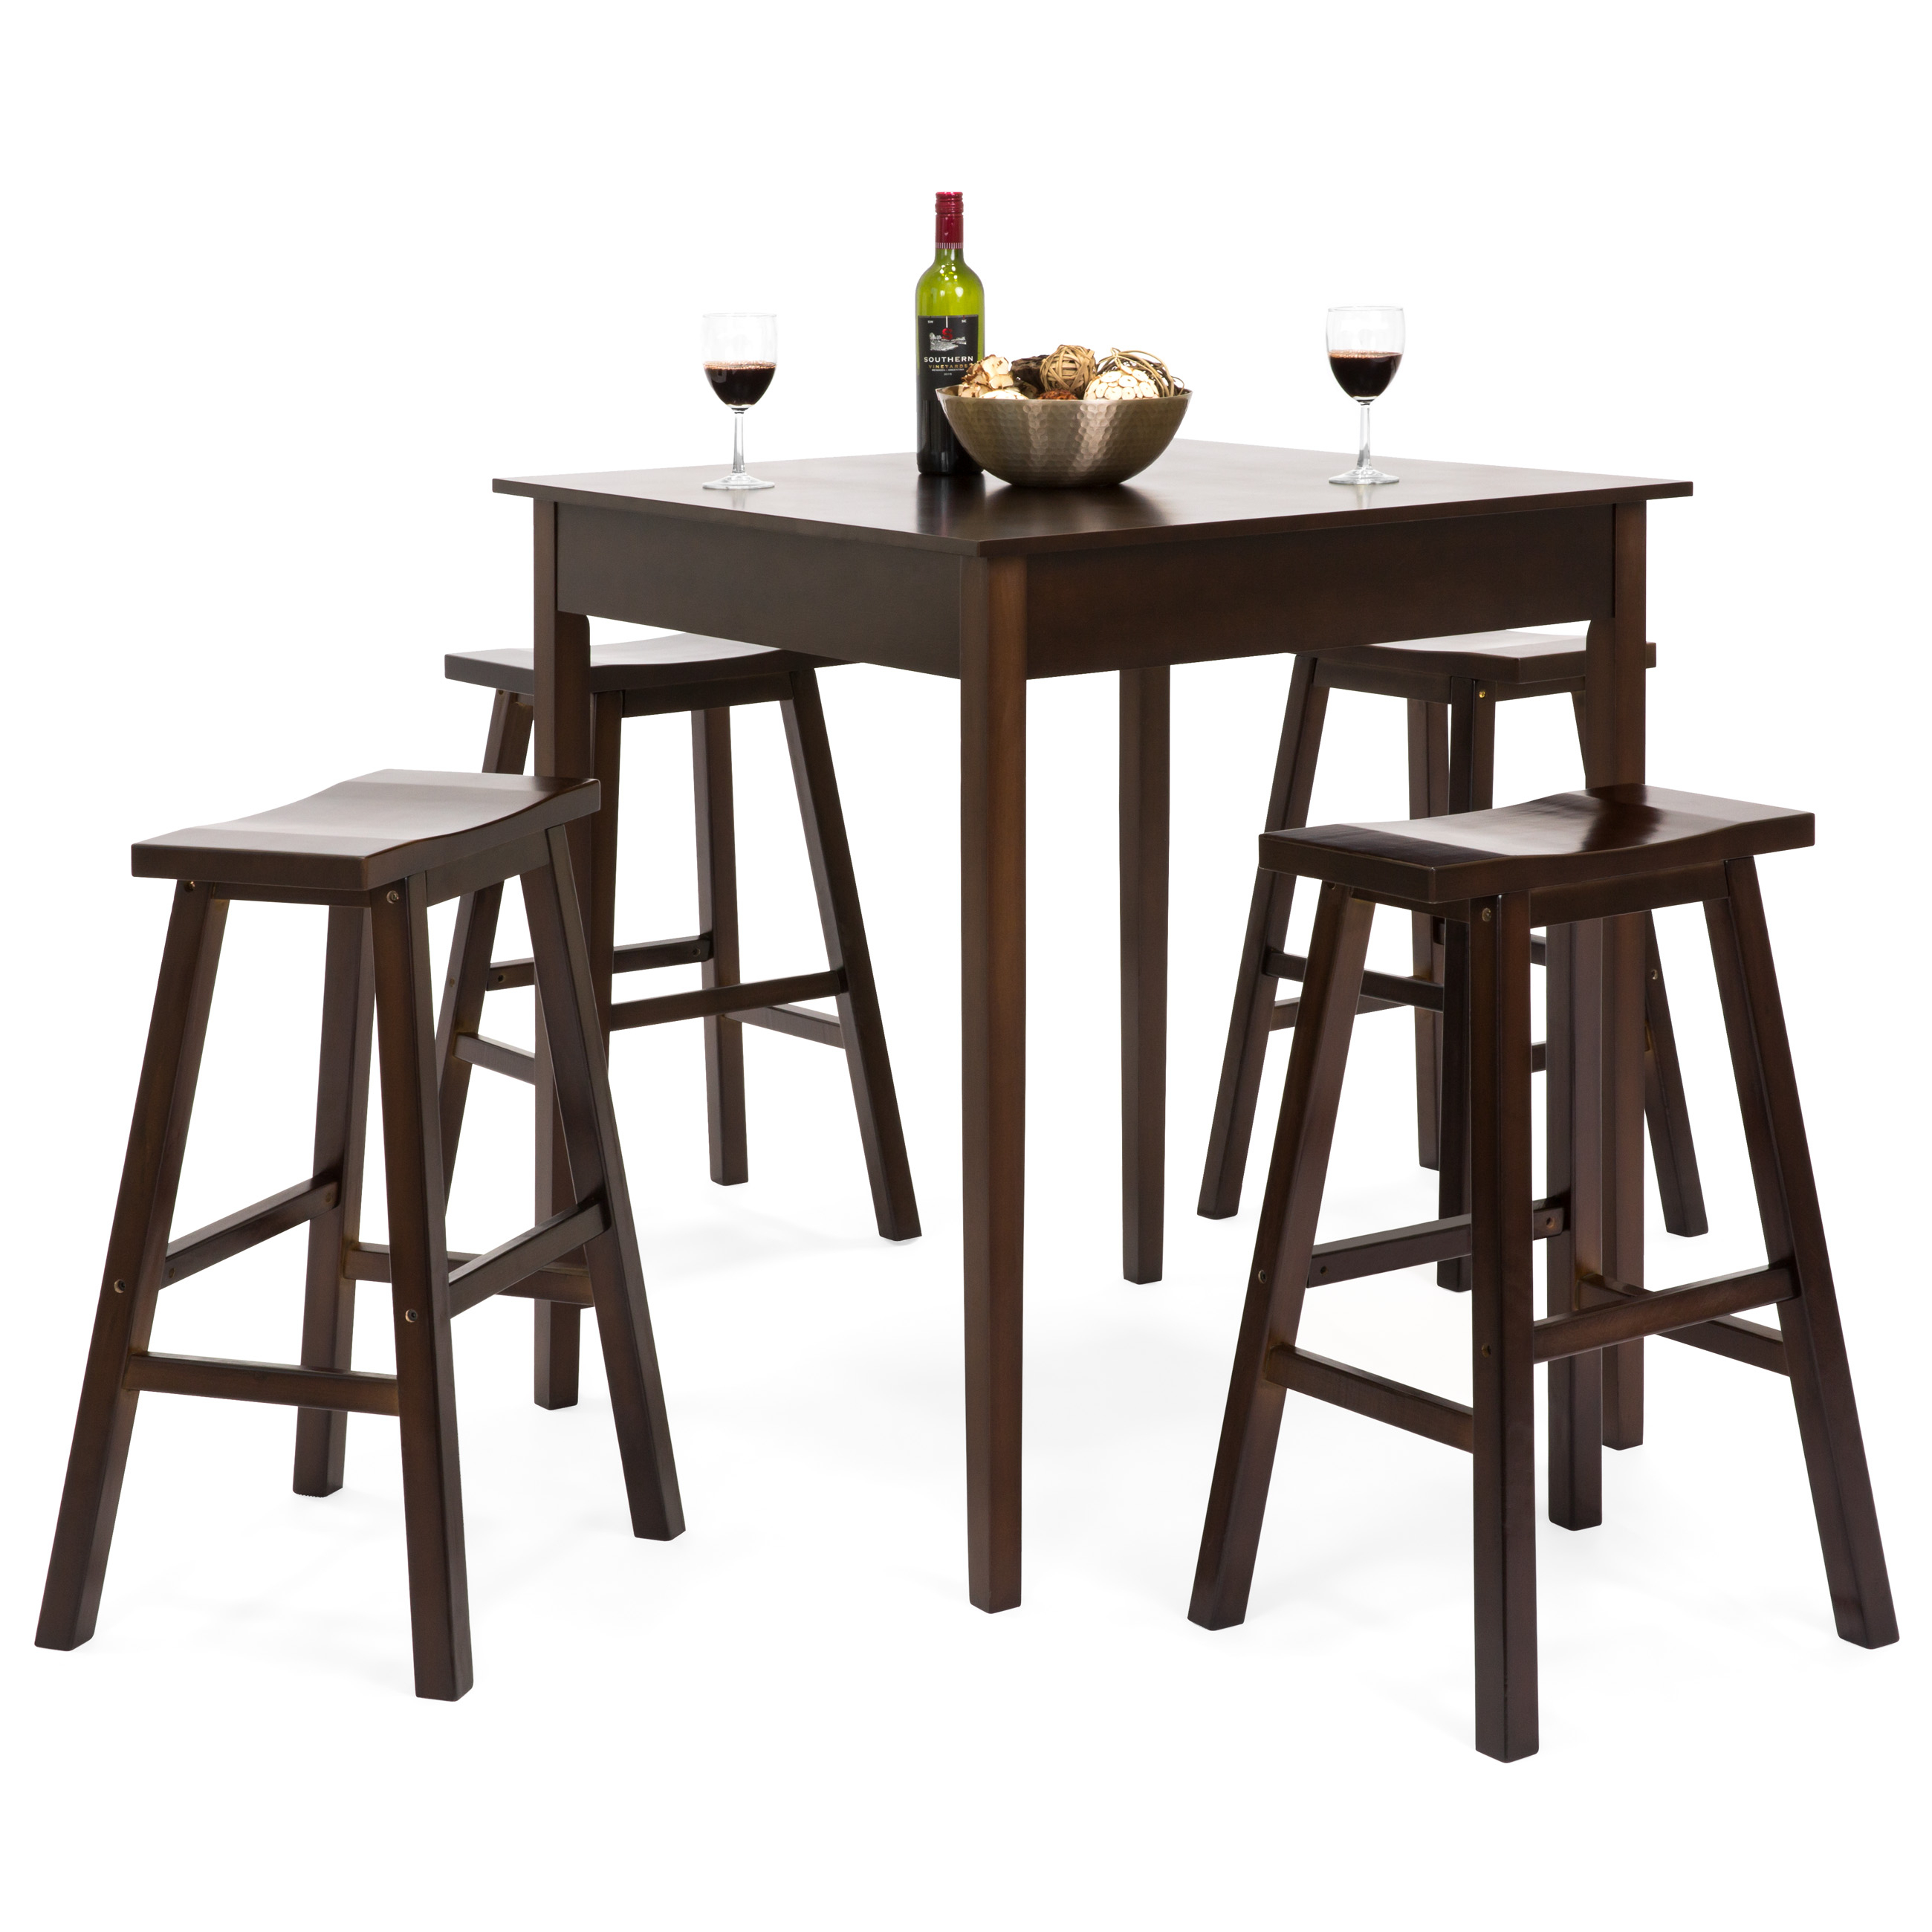 Inspiration about Recent Best Choice Products 5 Piece Solid Wood Dining Pub Bar Table Set With 4  Backless Saddle Stools Within Biggs 5 Piece Counter Height Solid Wood Dining Sets (Set Of 5) (#11 of 20)